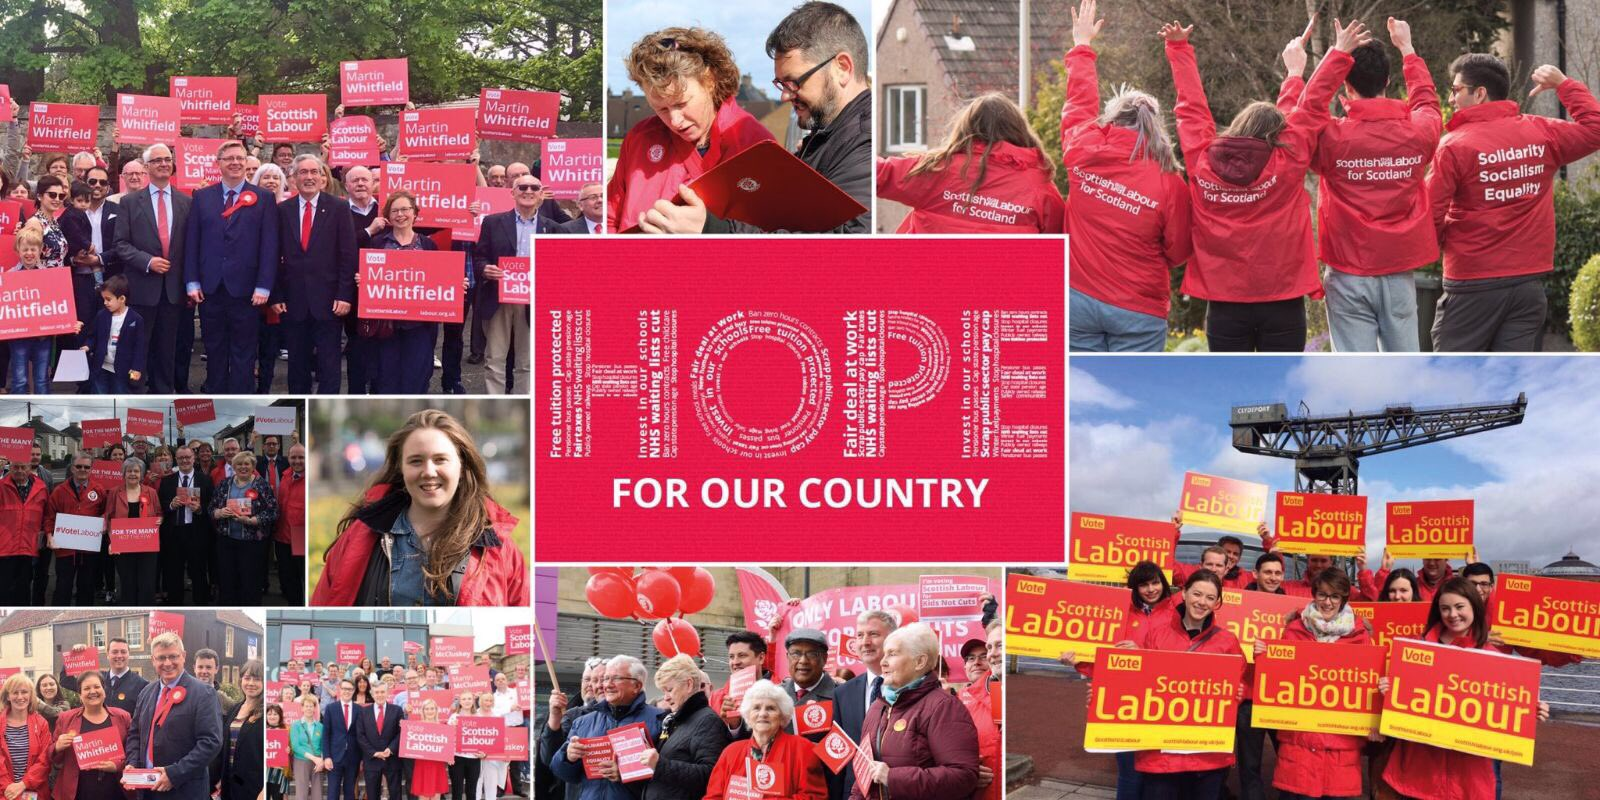 Labour are the party of Hope for our country. Join us at https://t.co/Z0BellnZh7 https://t.co/oBC4tYX3FK